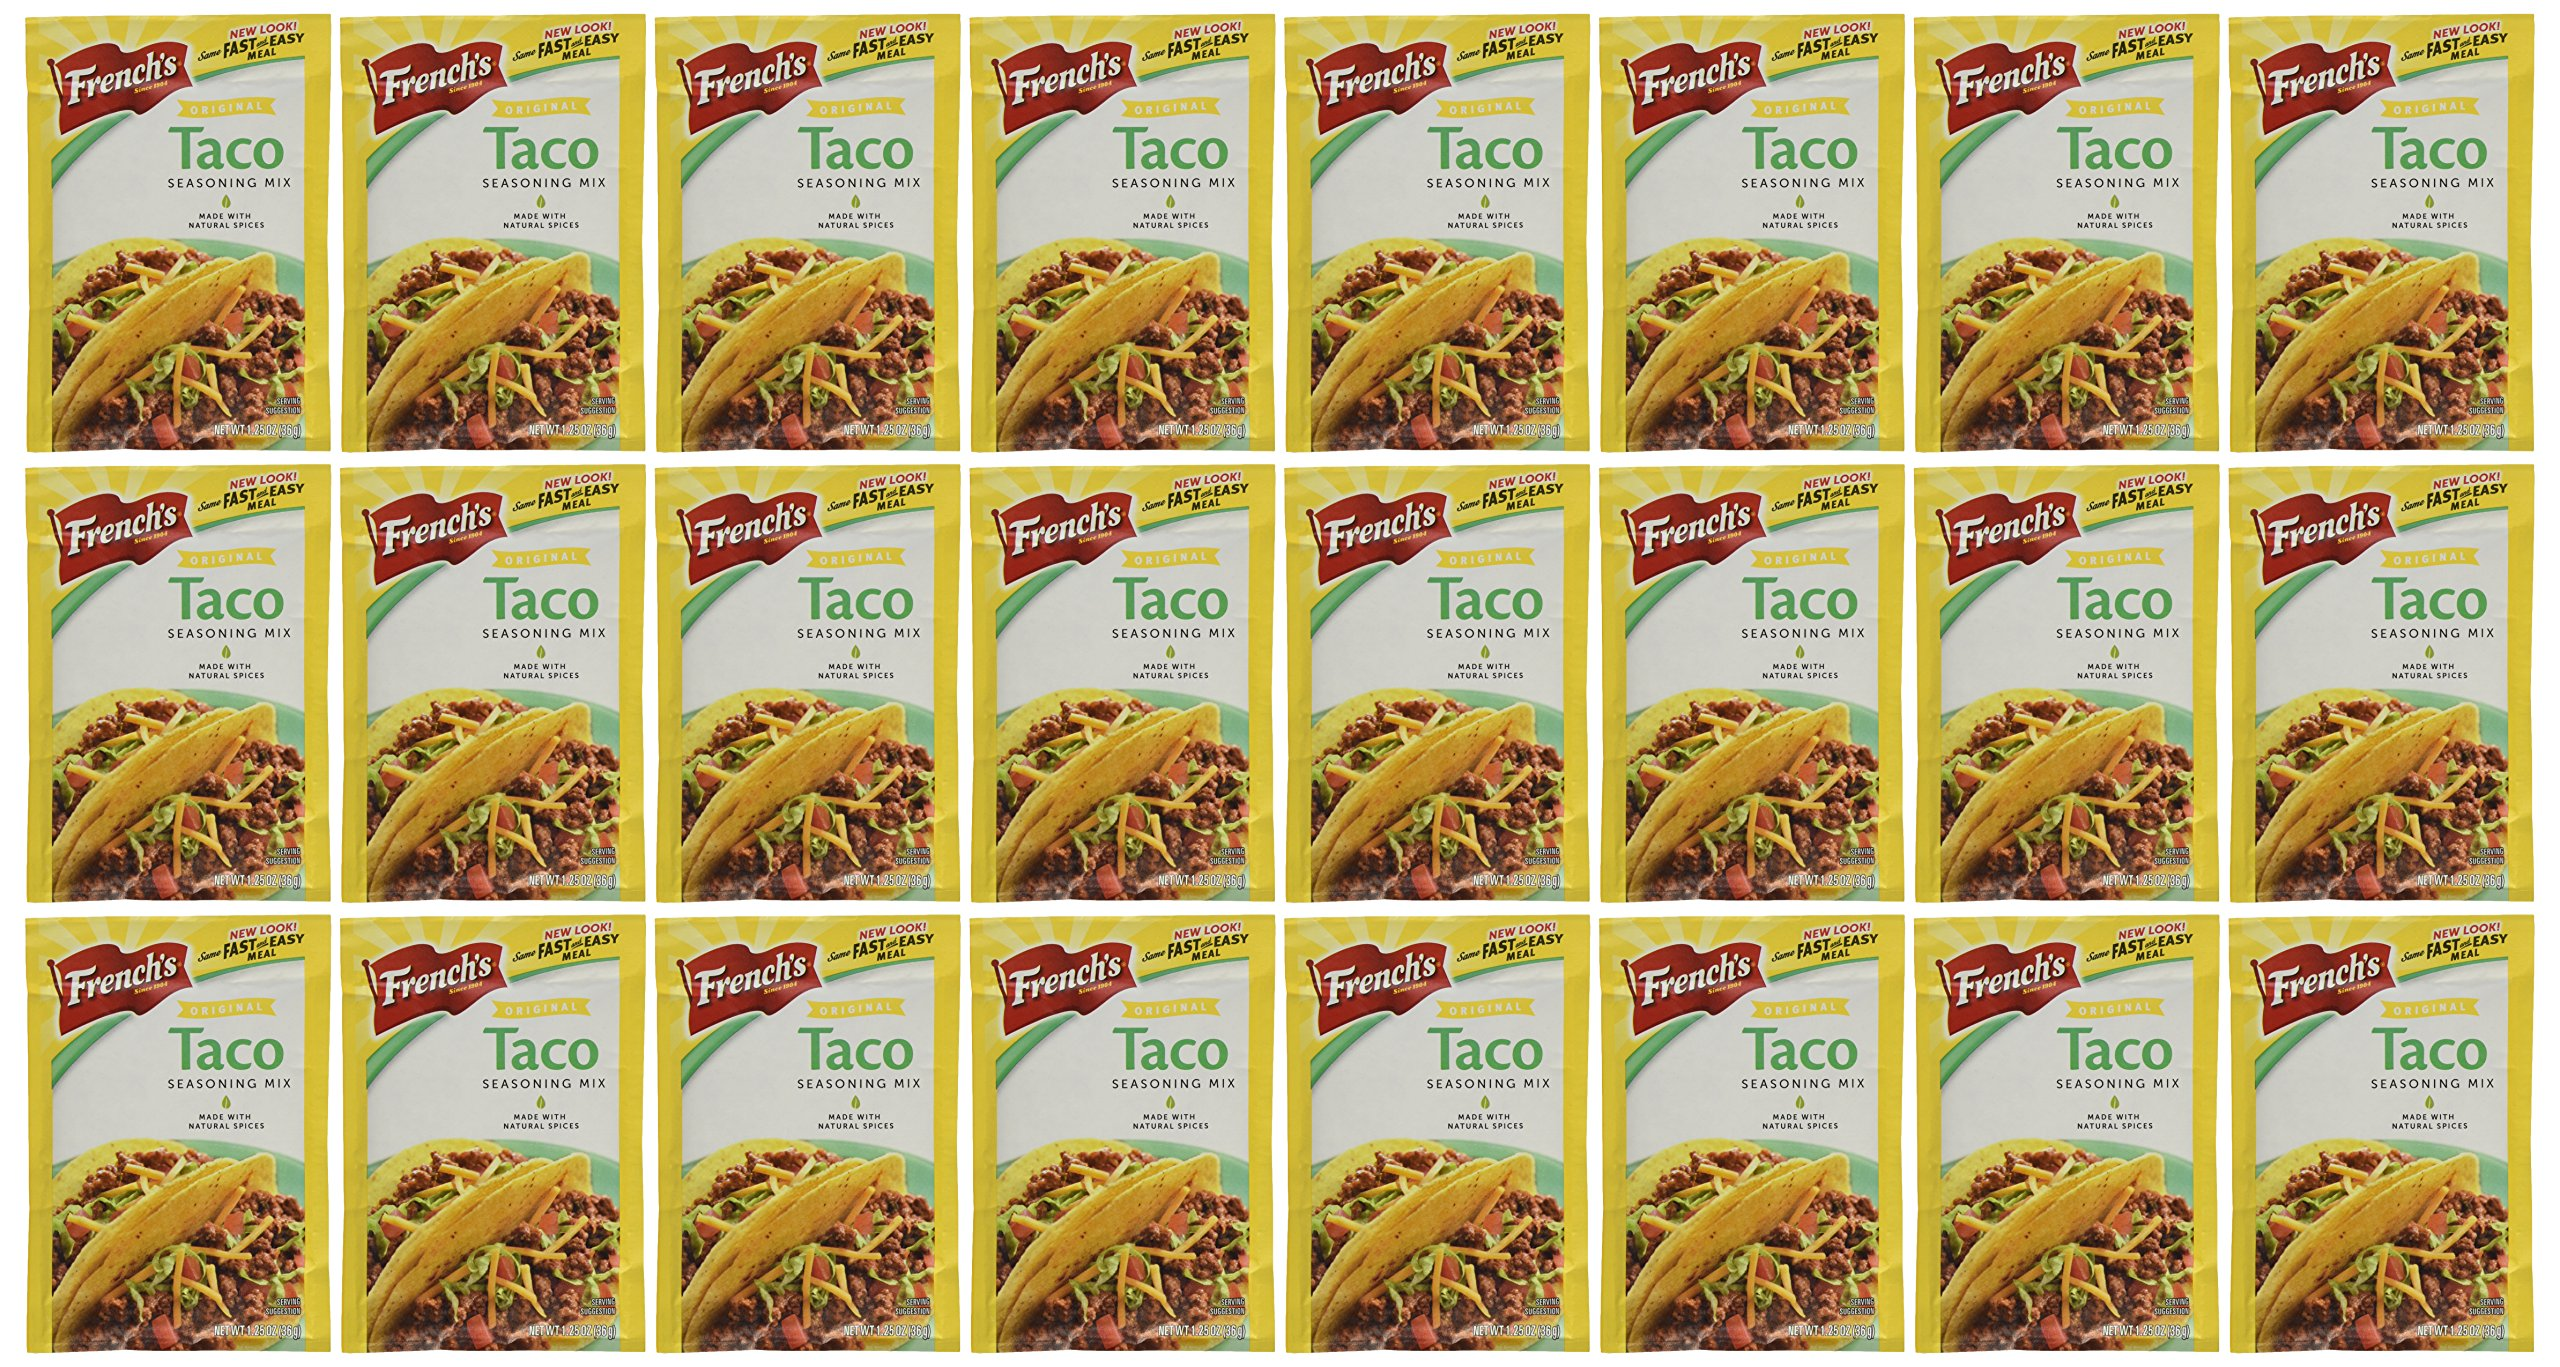 French's Seasoning Mix, Taco, 1.25-Ounce Packets (Pack of 24)